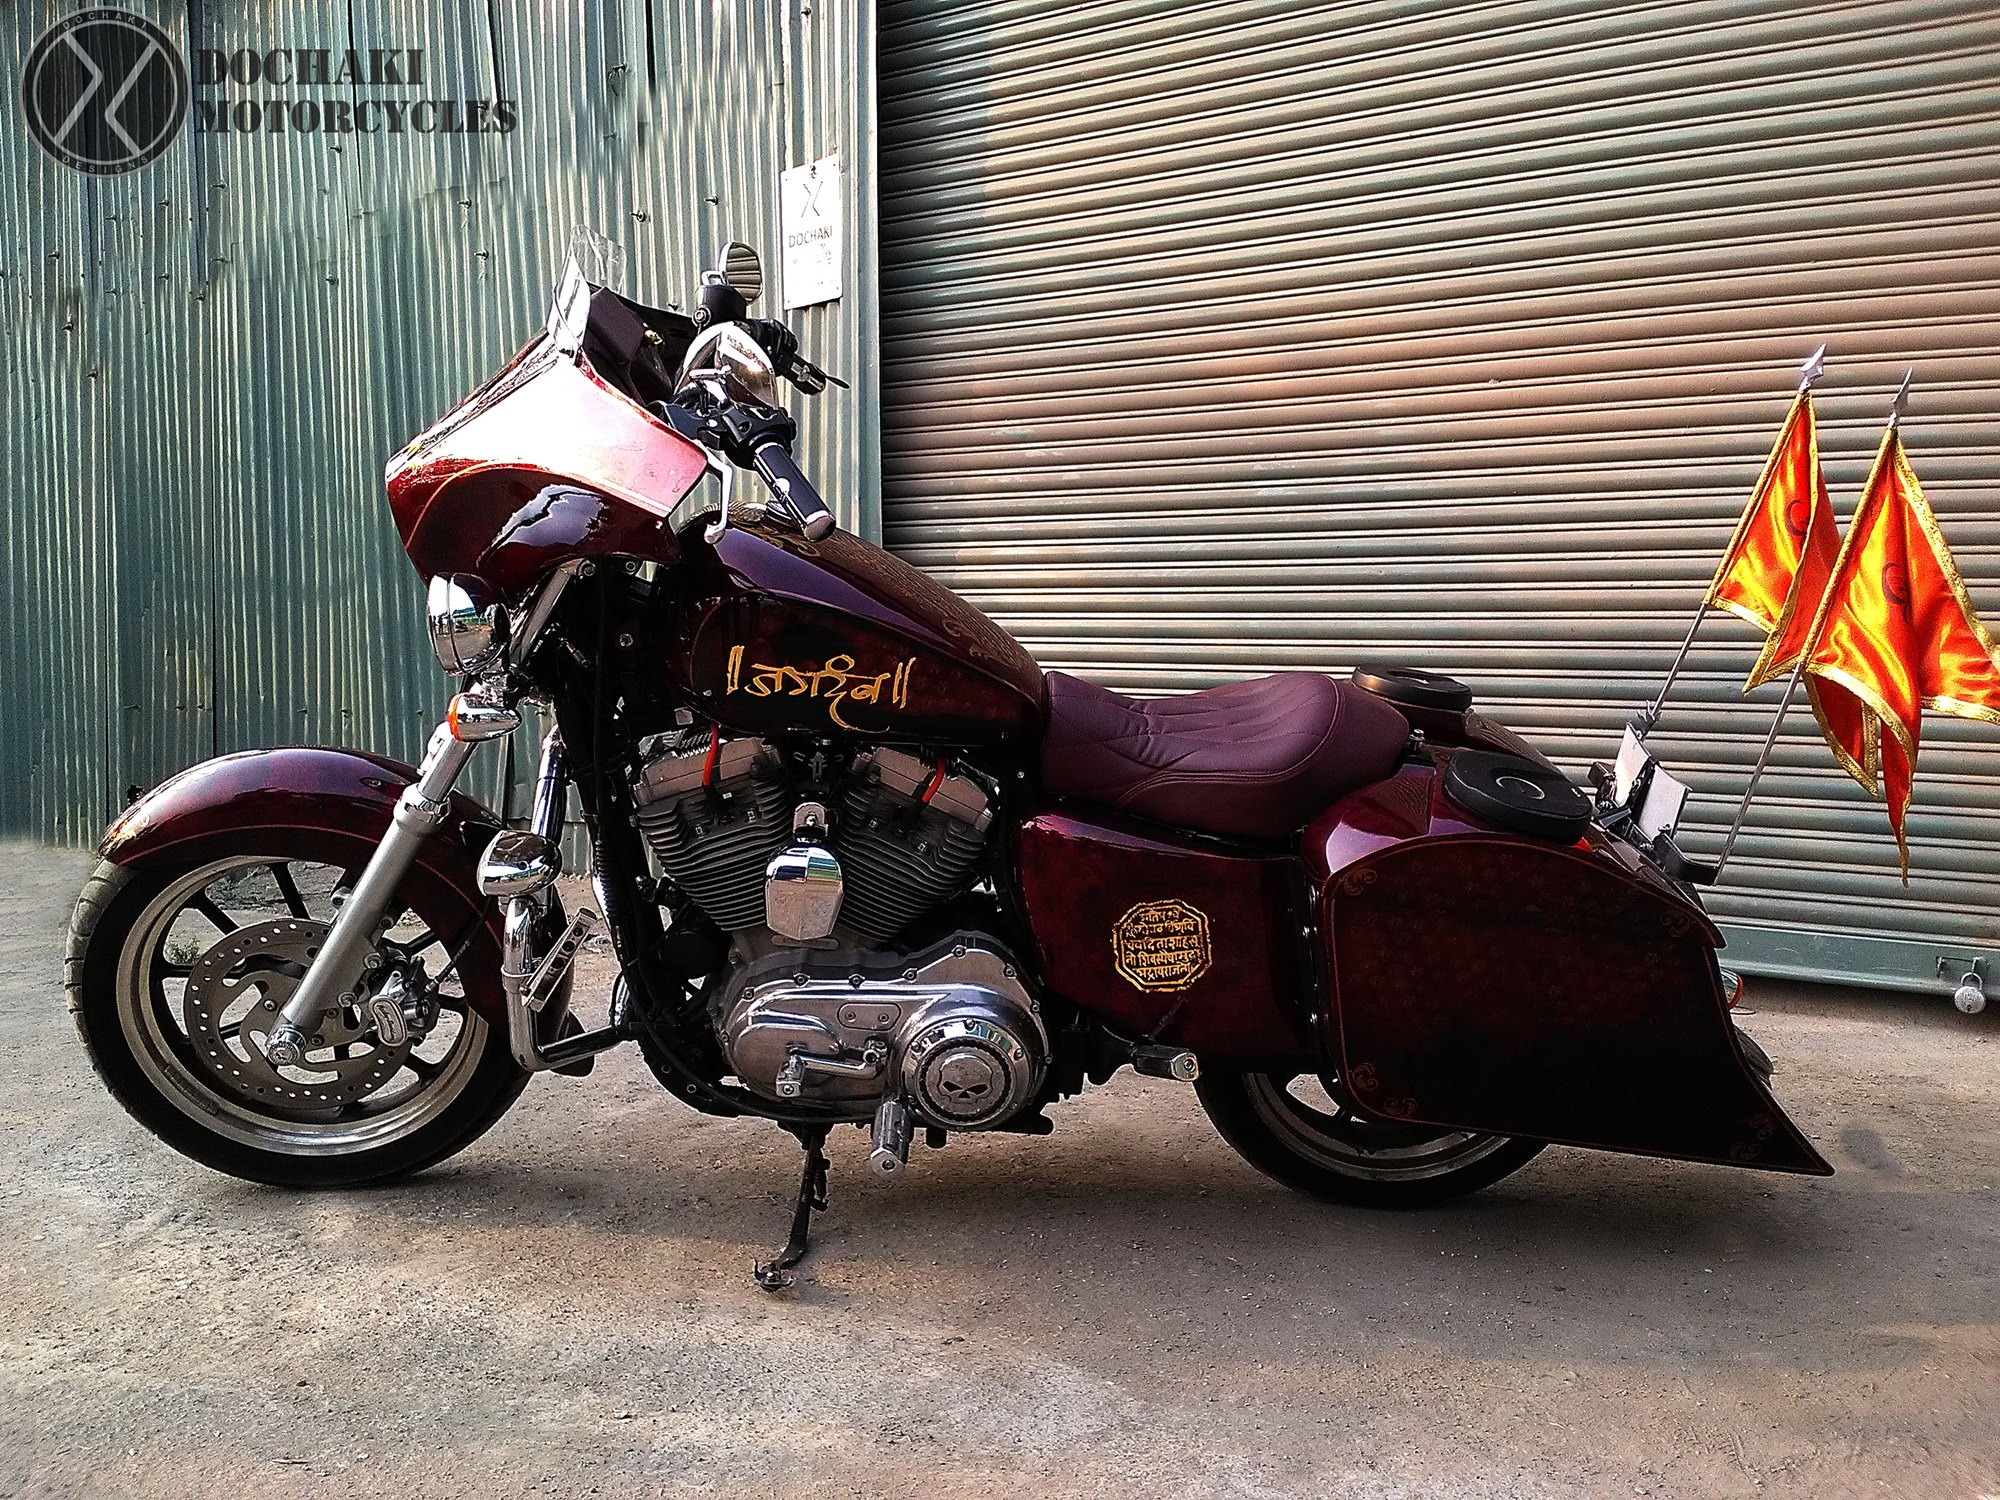 Custom Bagger Motorcycle in India Modified Harley Davidson Superlow Dochaki Design